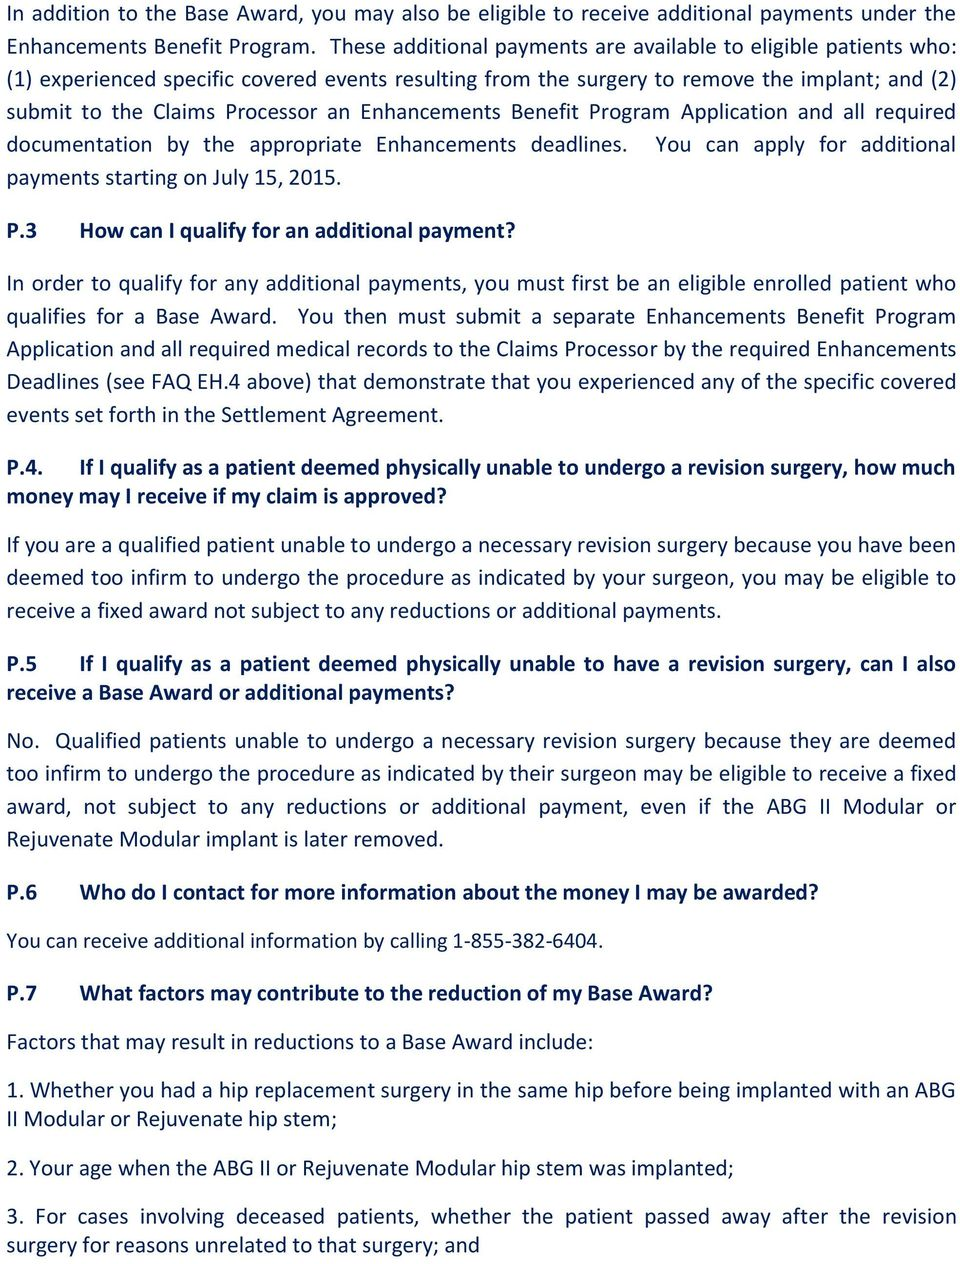 Enhancements Benefit Program Application and all required documentation by the appropriate Enhancements deadlines. You can apply for additional payments starting on July 15, 2015. P.3 How can I qualify for an additional payment?